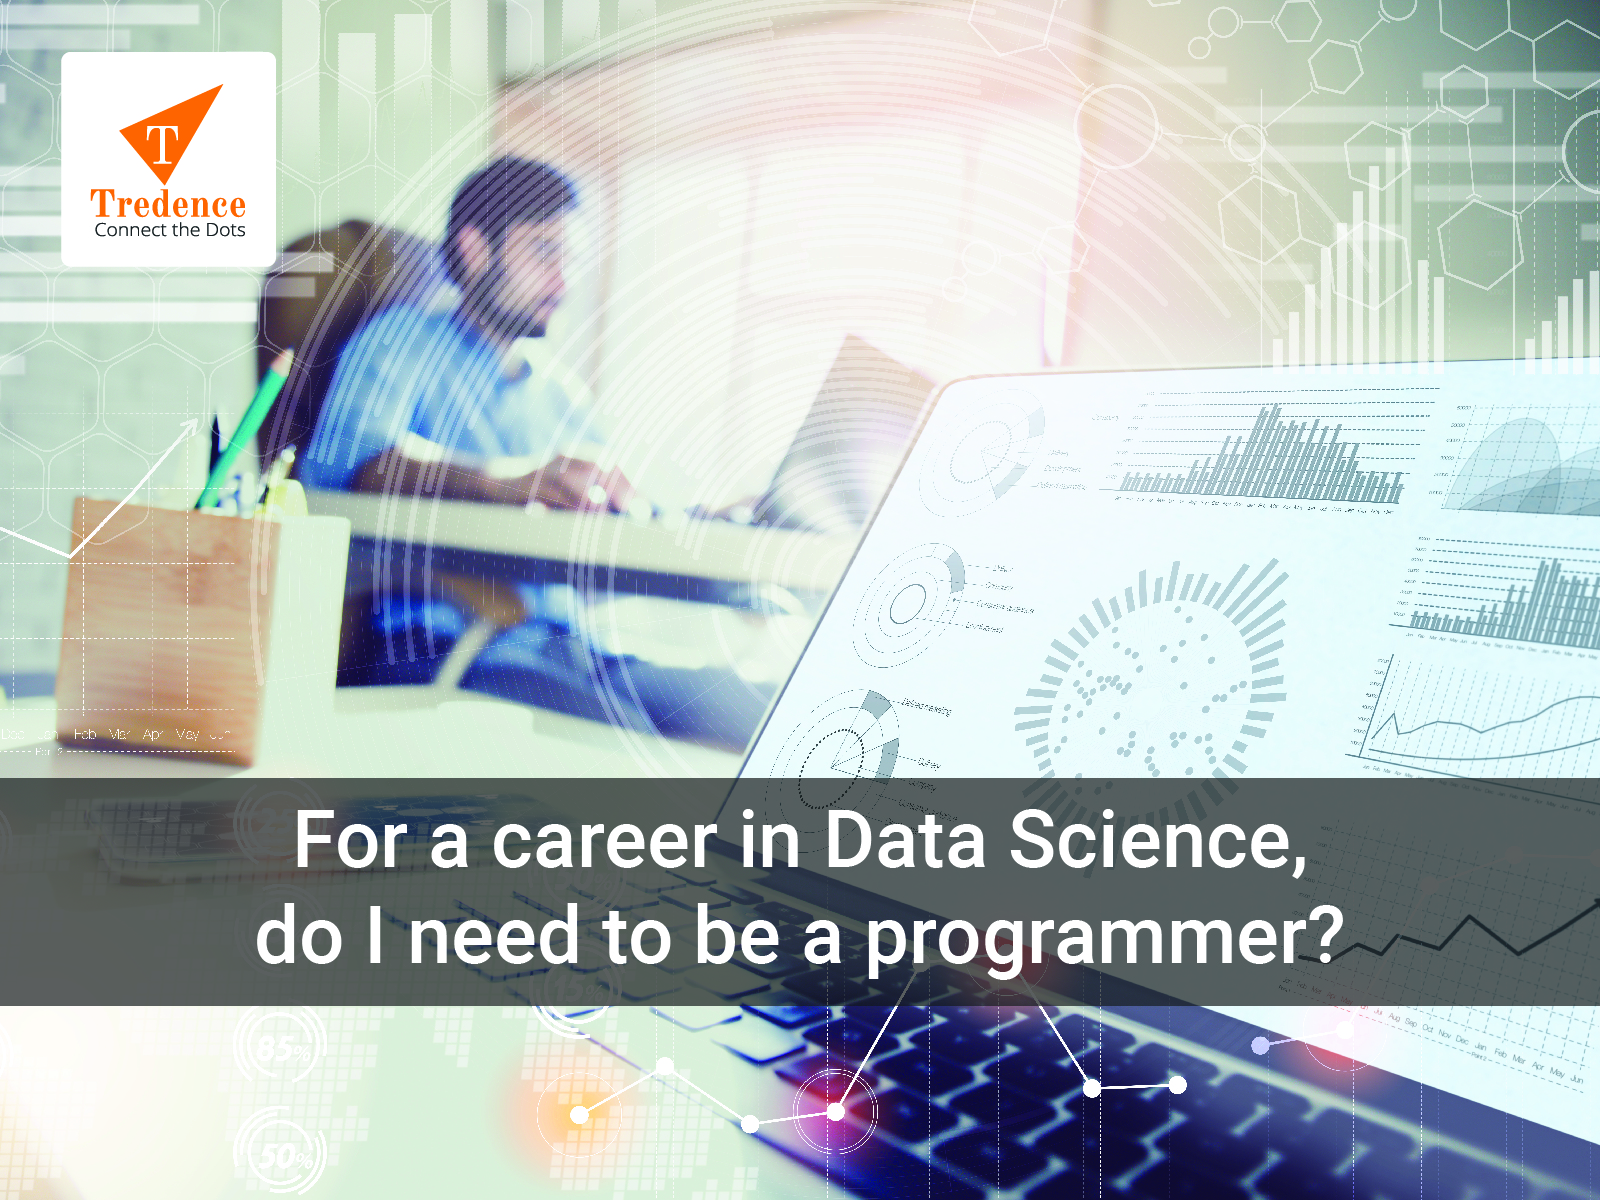 Career in Data Science